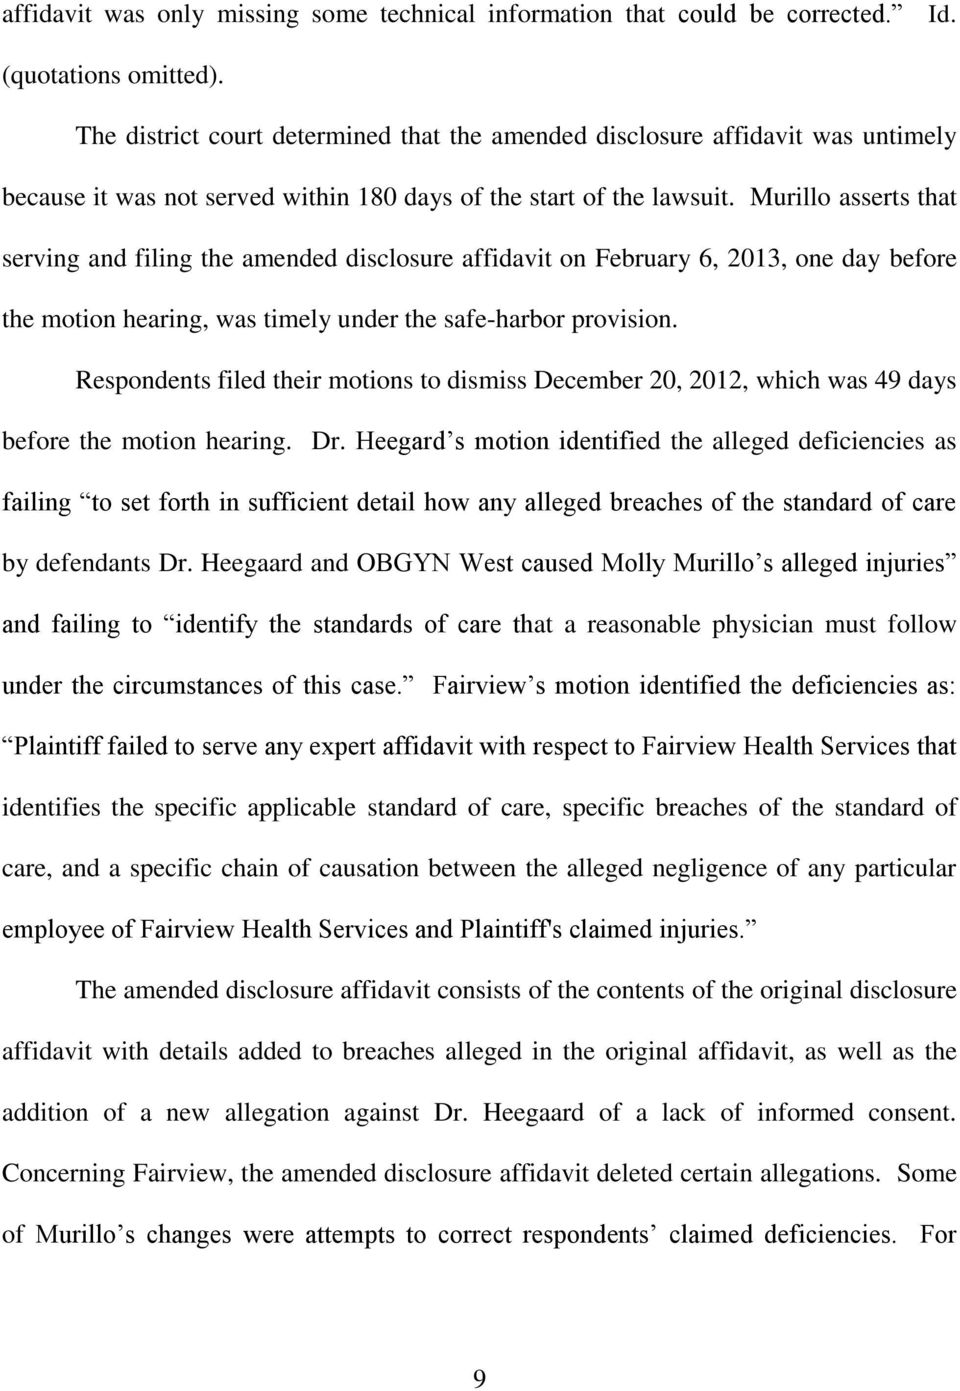 Murillo asserts that serving and filing the amended disclosure affidavit on February 6, 2013, one day before the motion hearing, was timely under the safe-harbor provision.